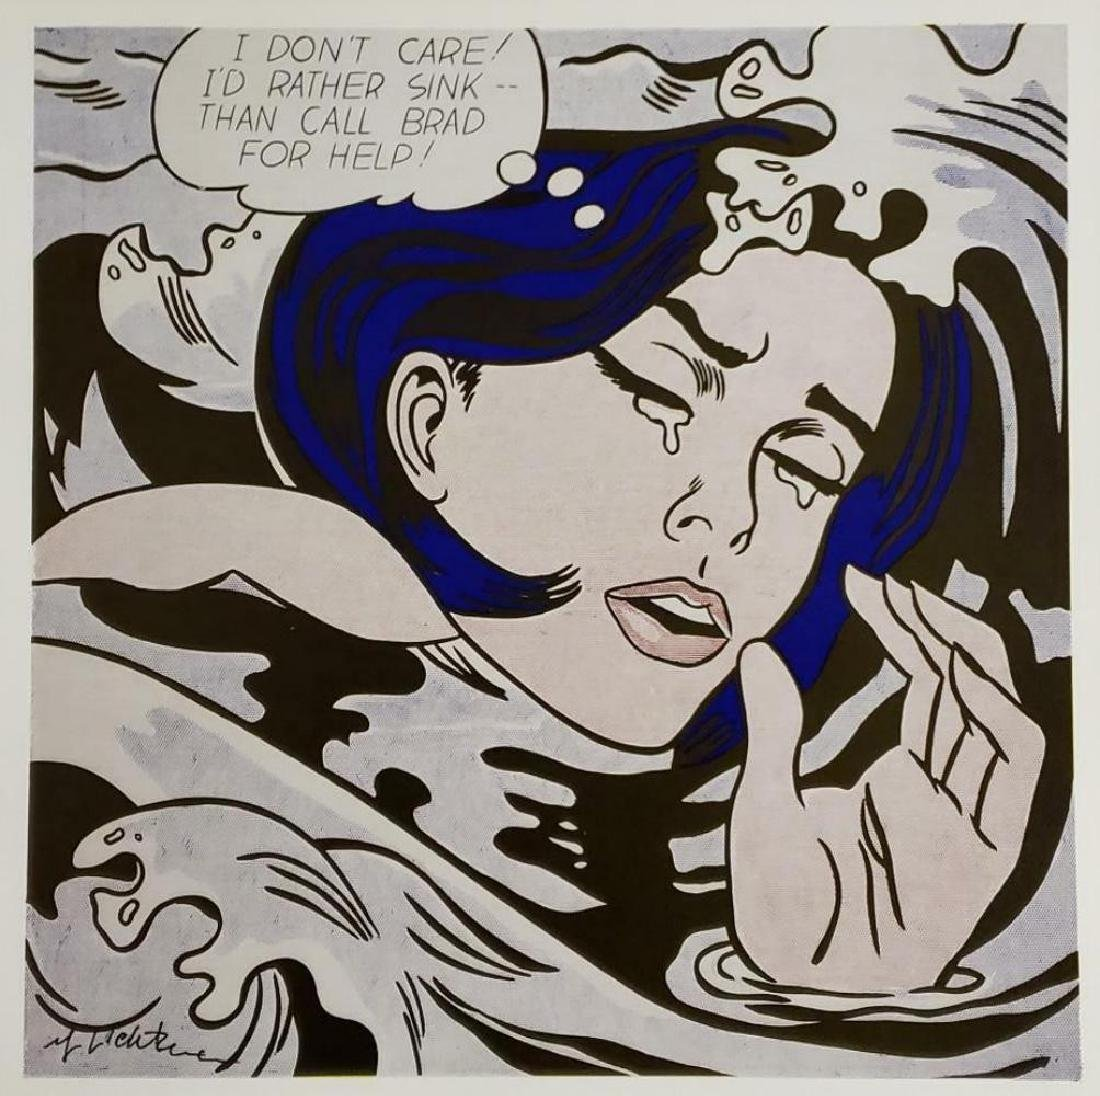 Roy Lichtenstein - Drowning Girl, 1963, Hand signed lit